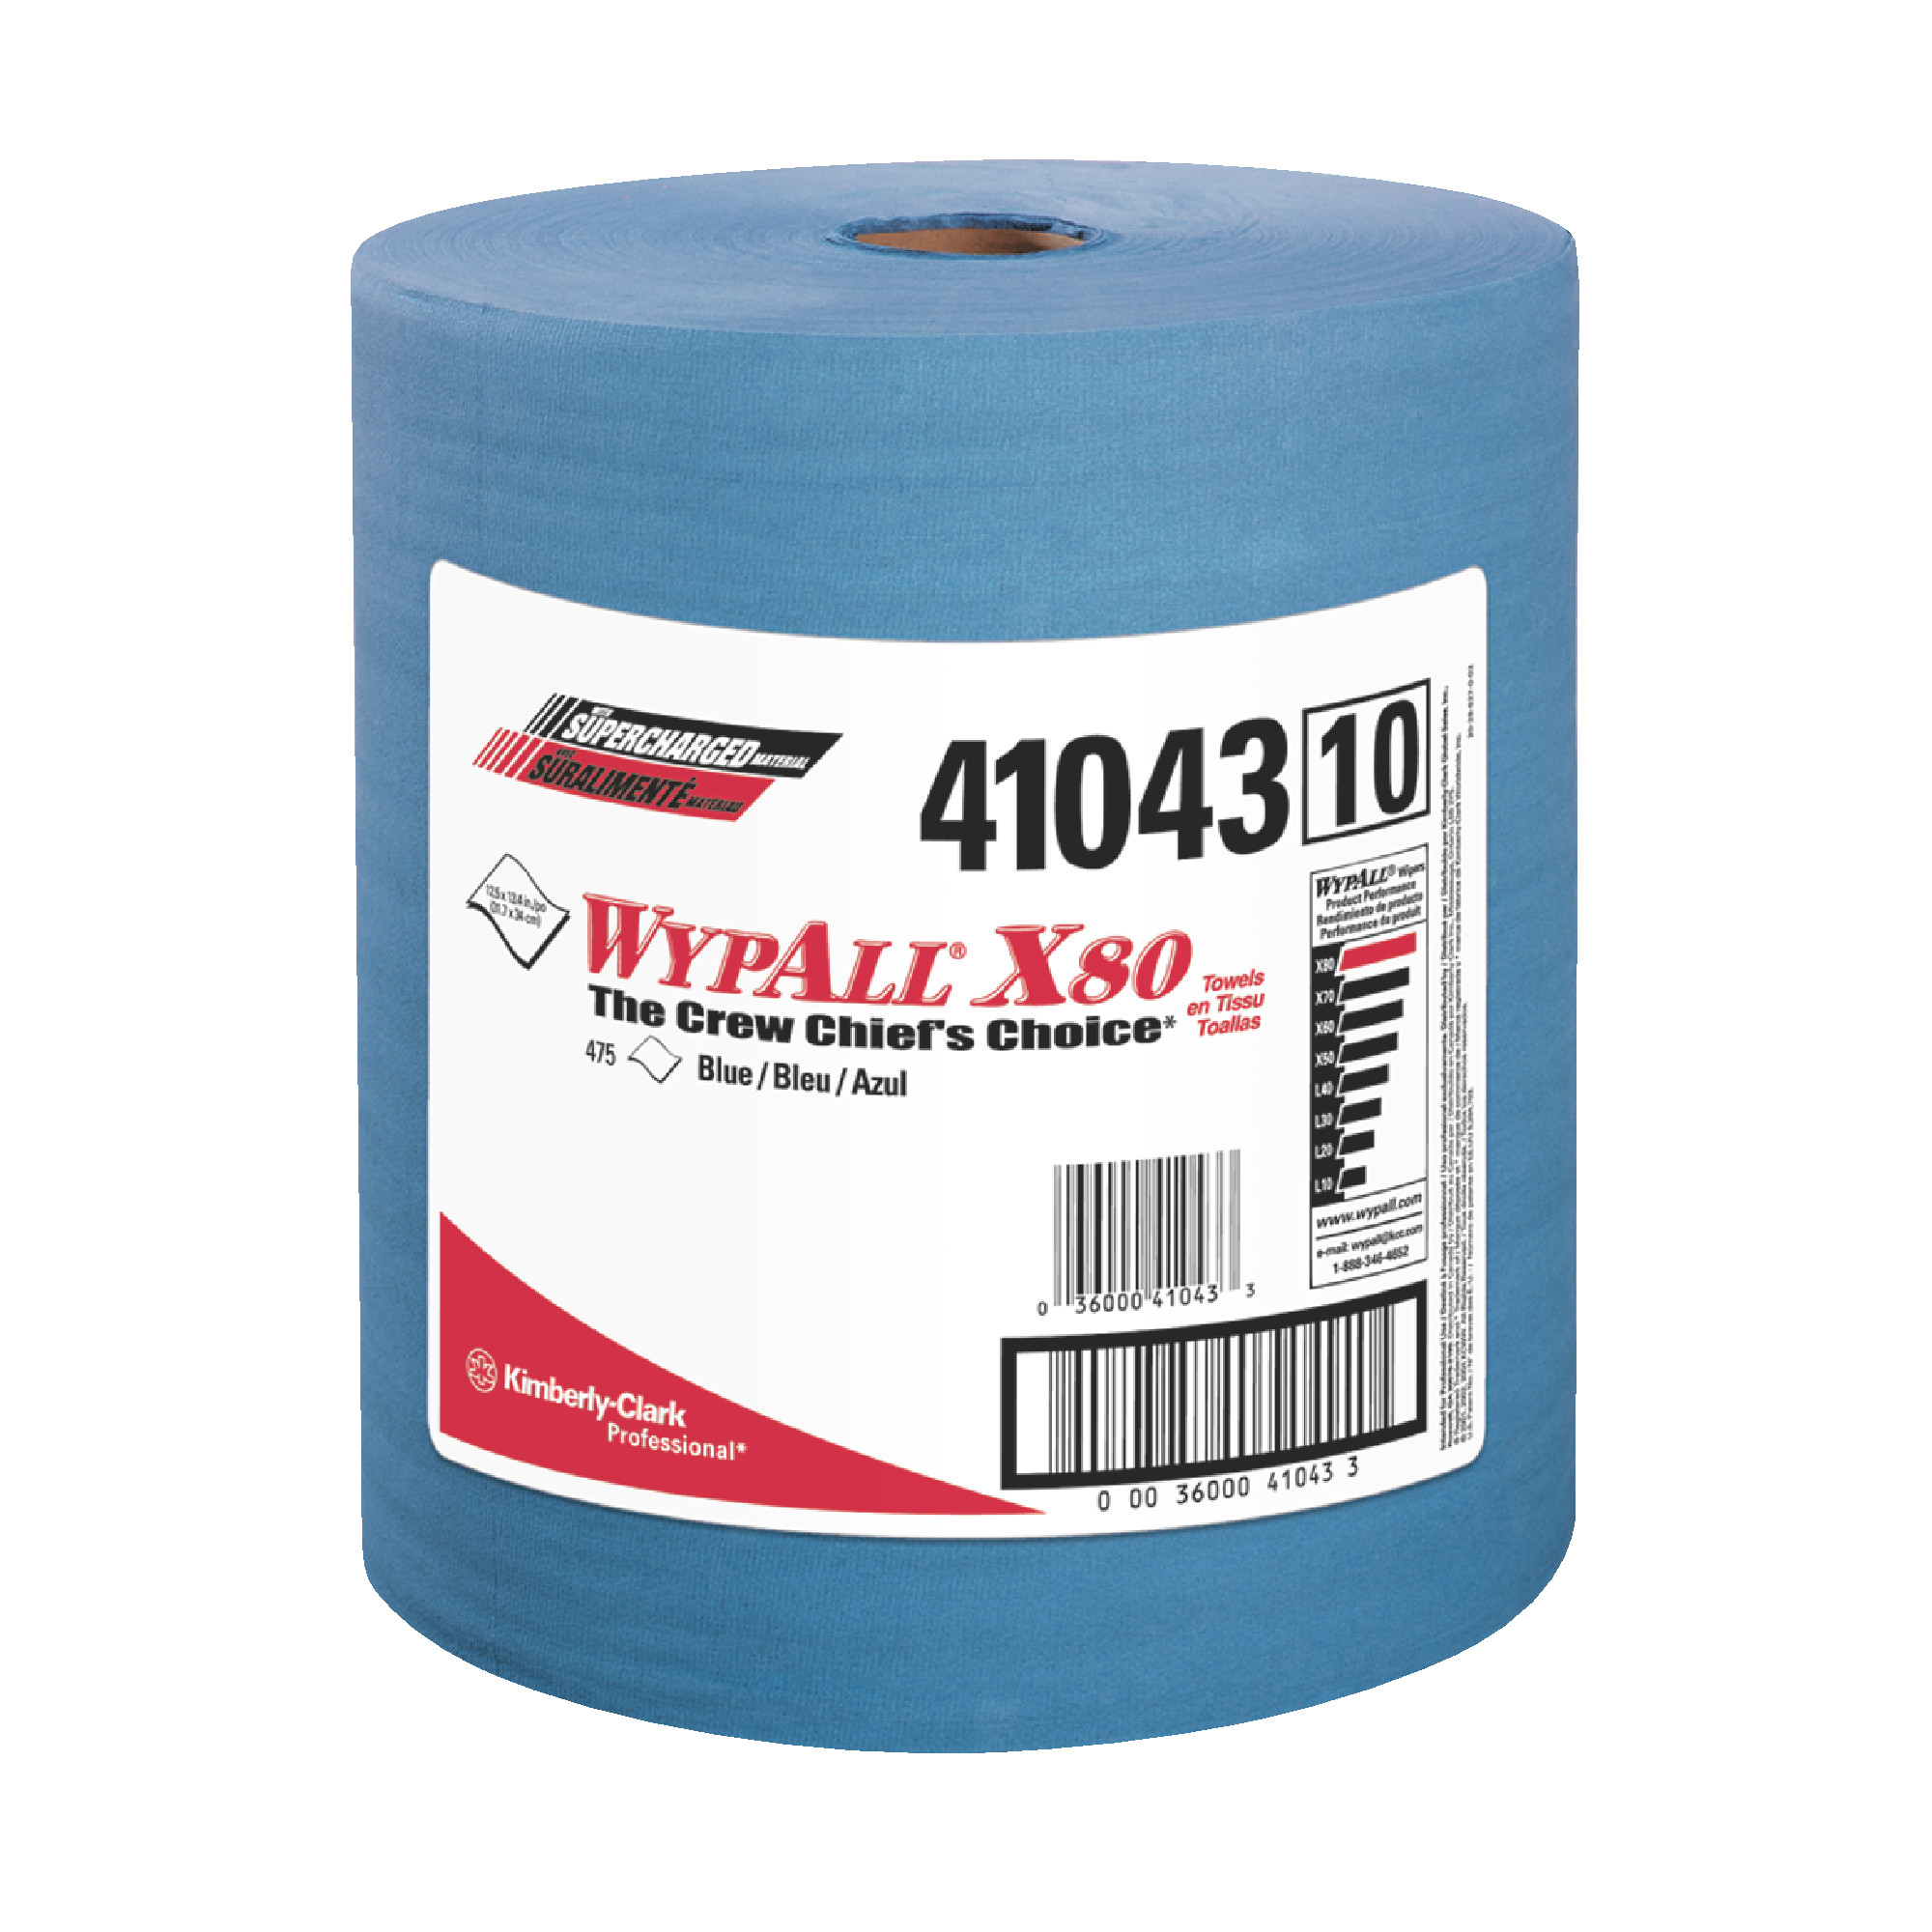 Wypall X80 Towels Pop-up